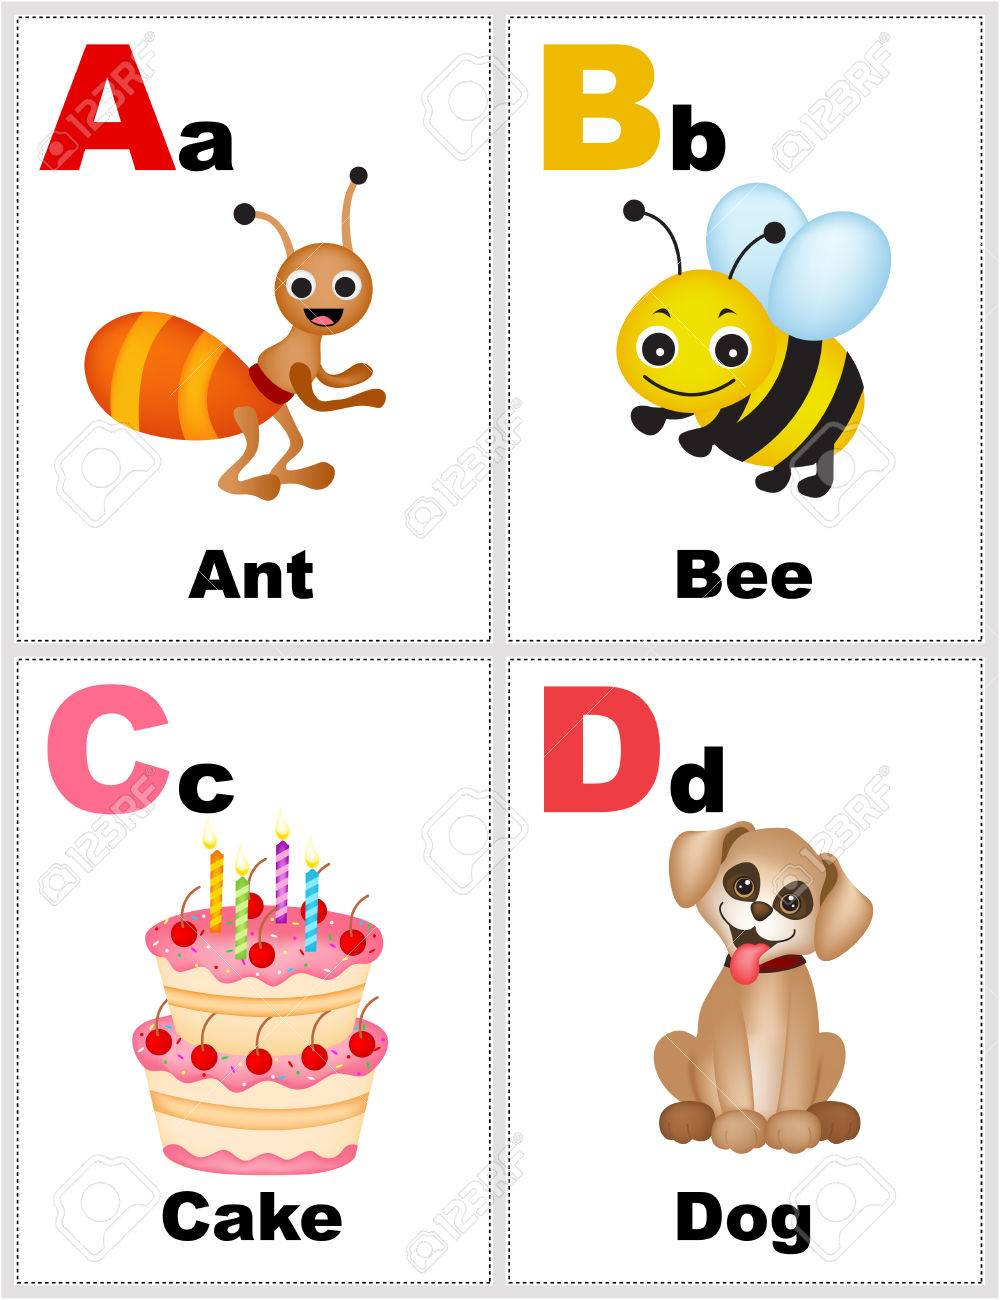 Alphabet printable flashcards collection with letter a,b,c,d..